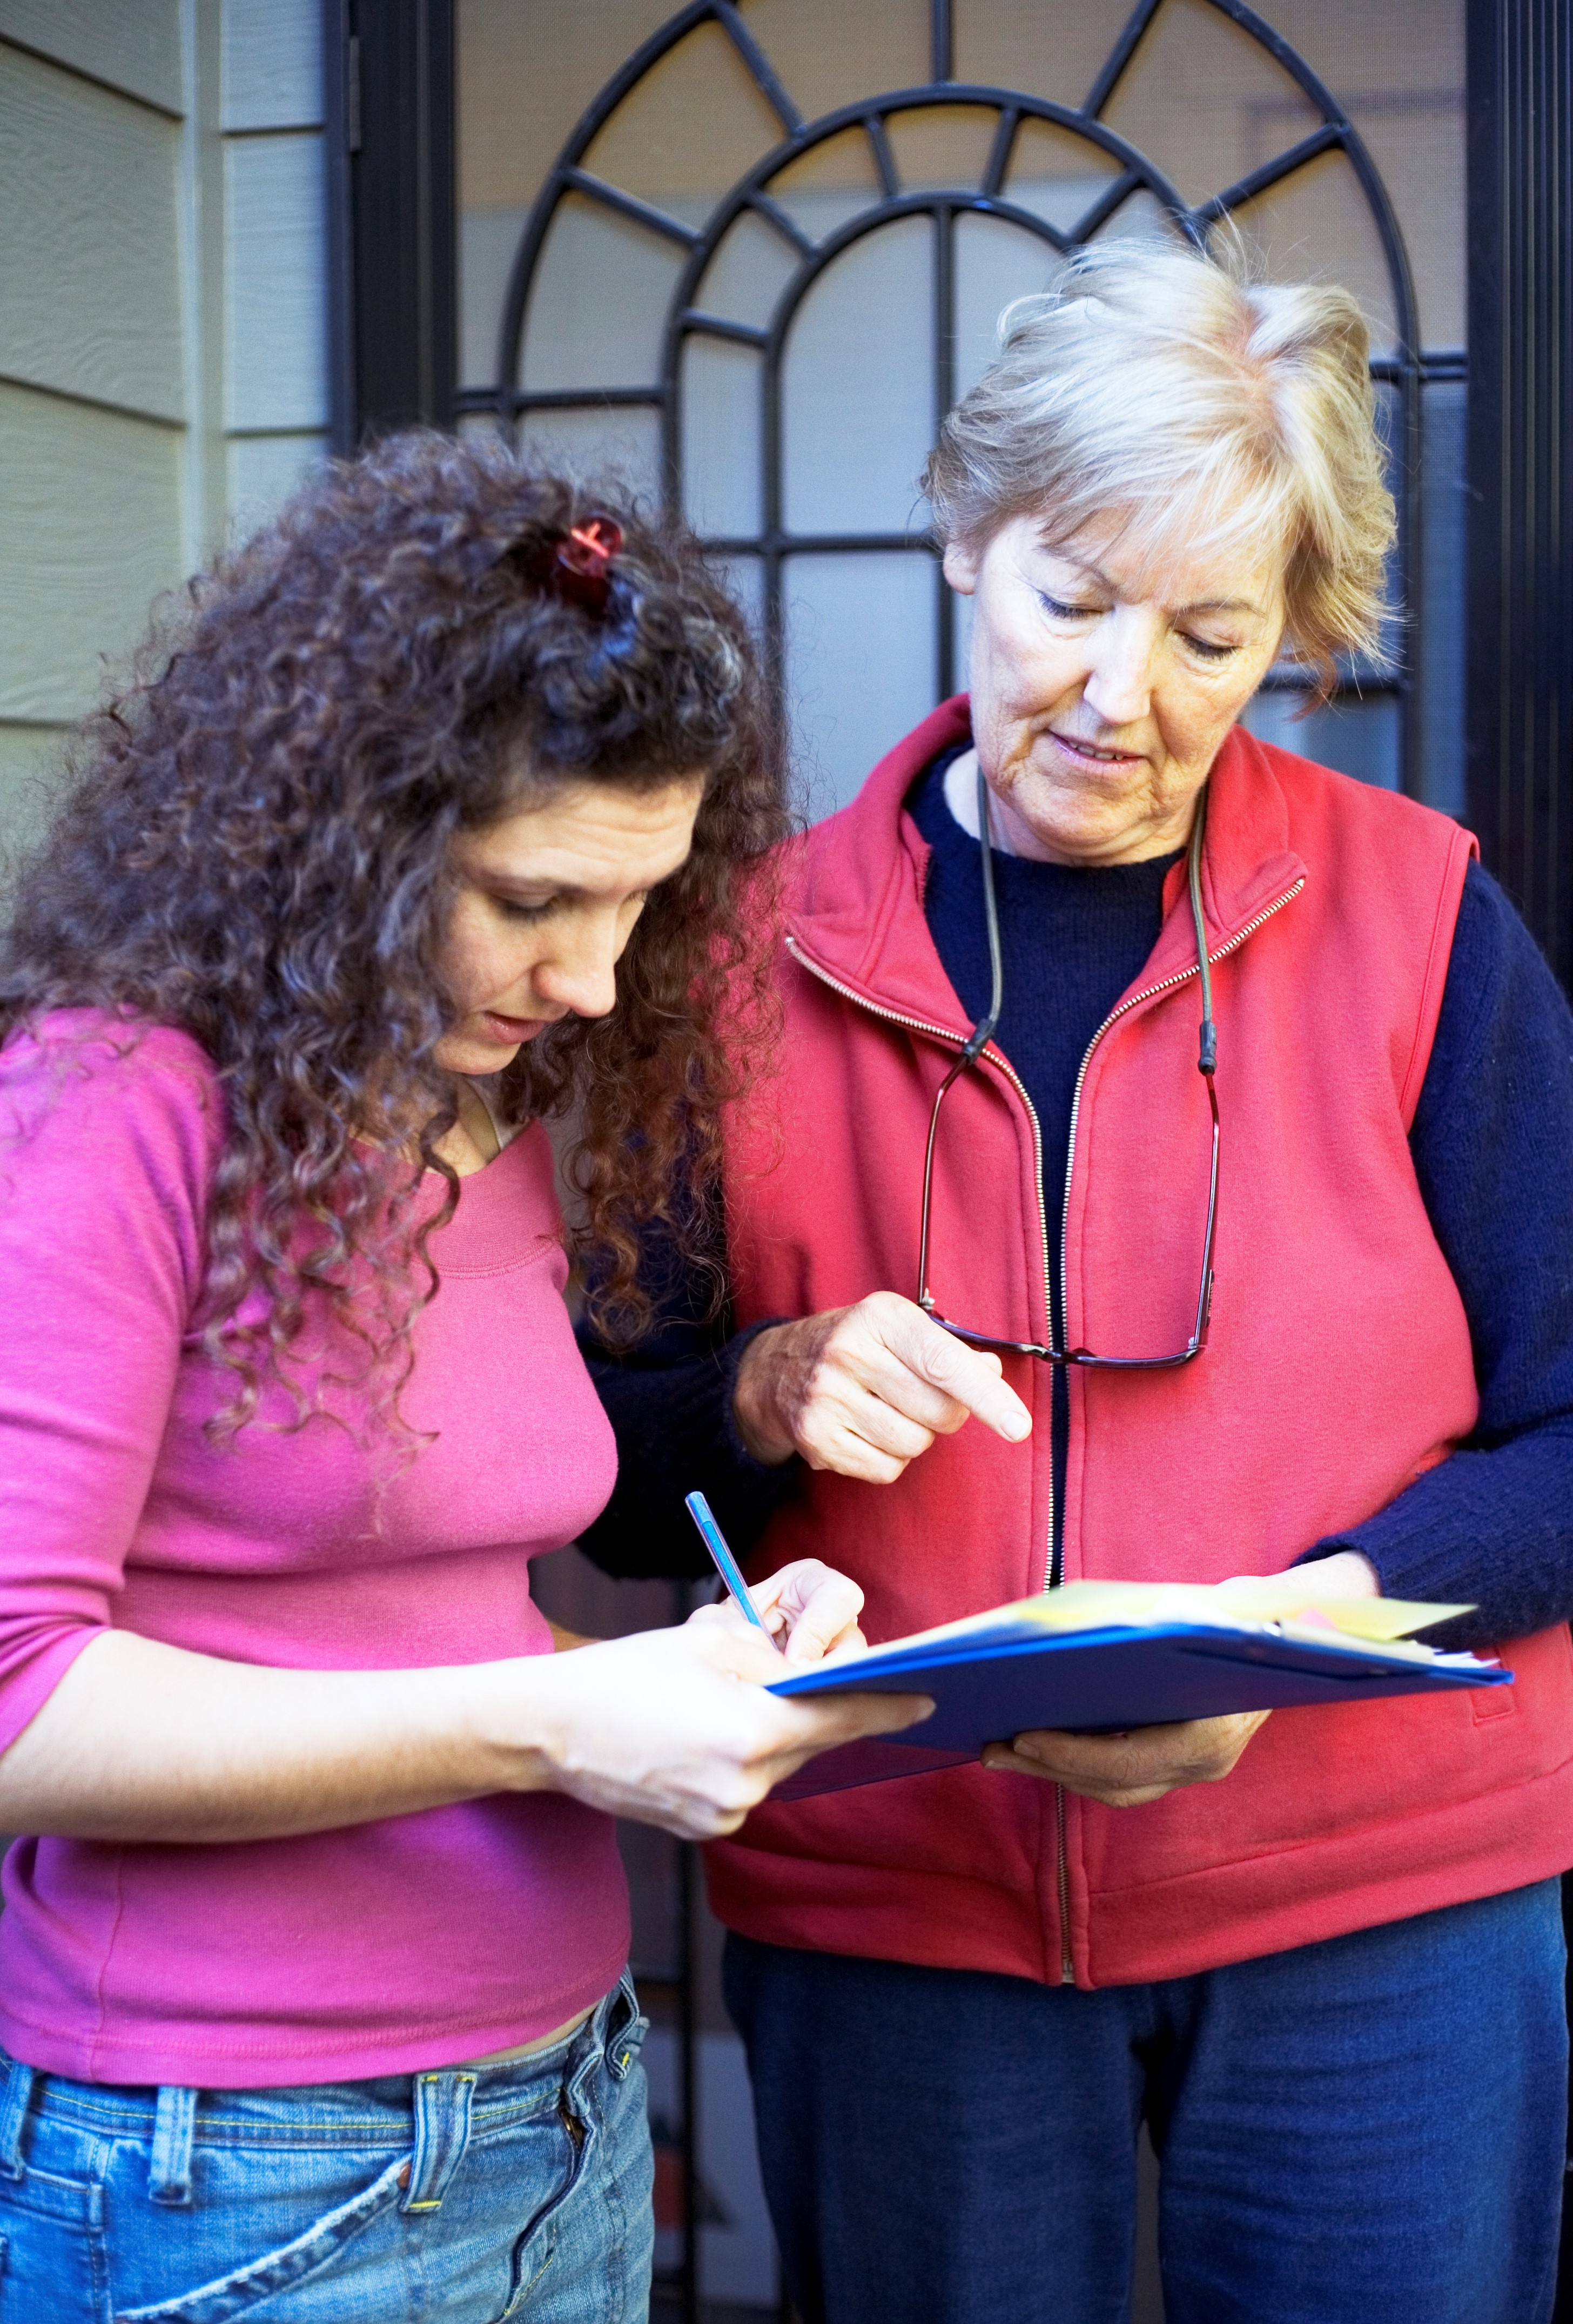 One woman holds a clipboard while another woman signs something on it